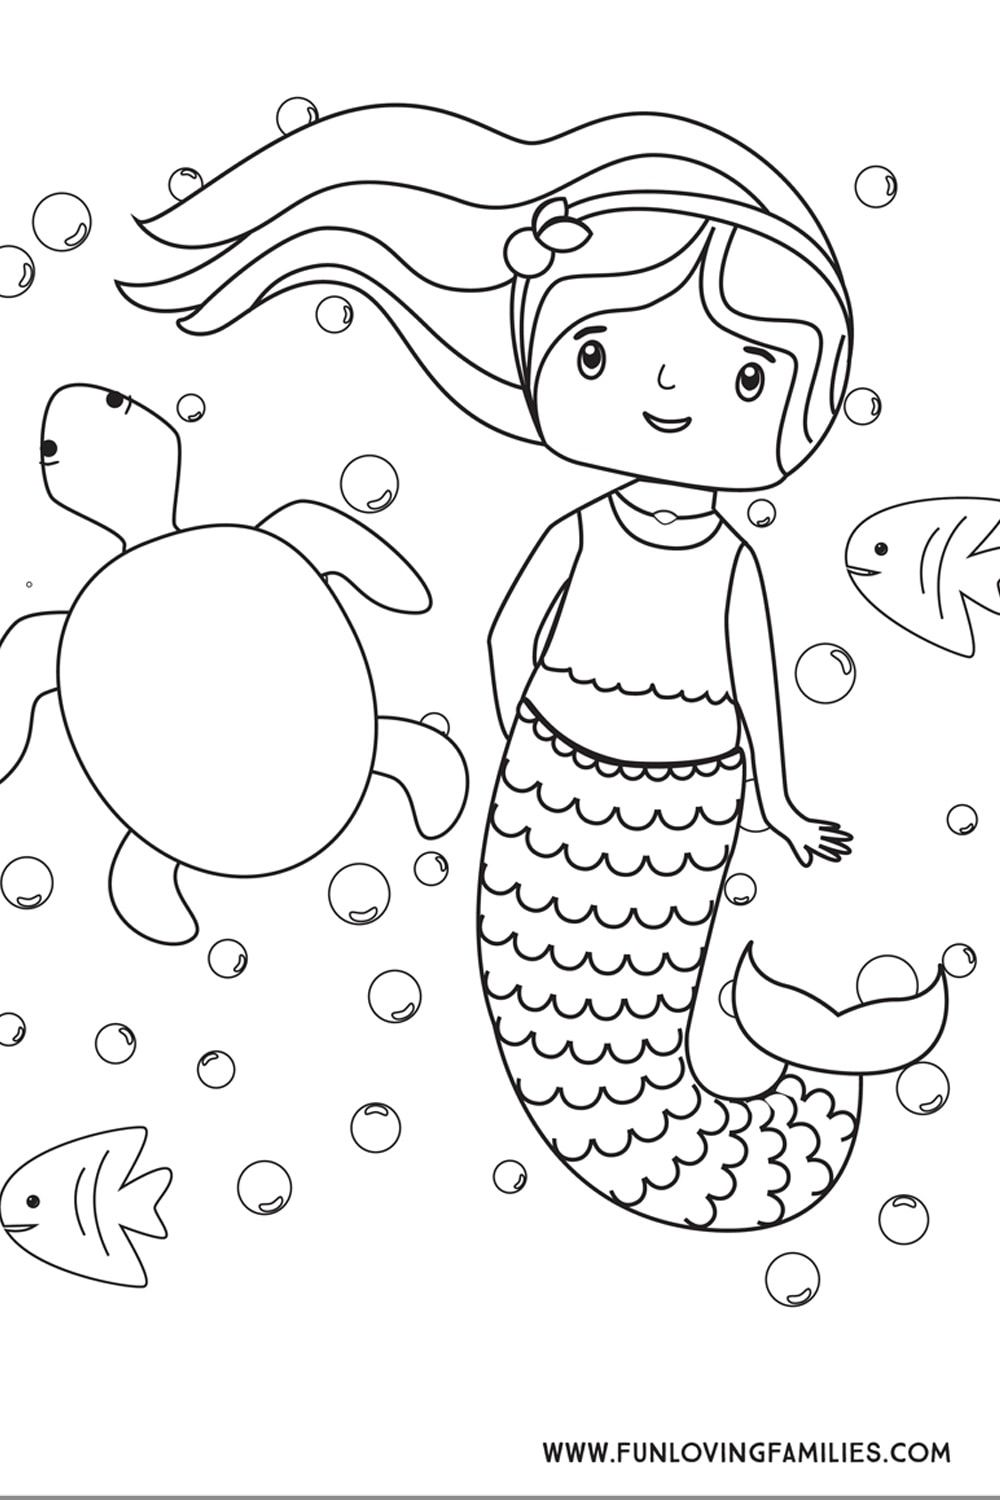 Download this simple mermaid coloring sheet for kids for a calm